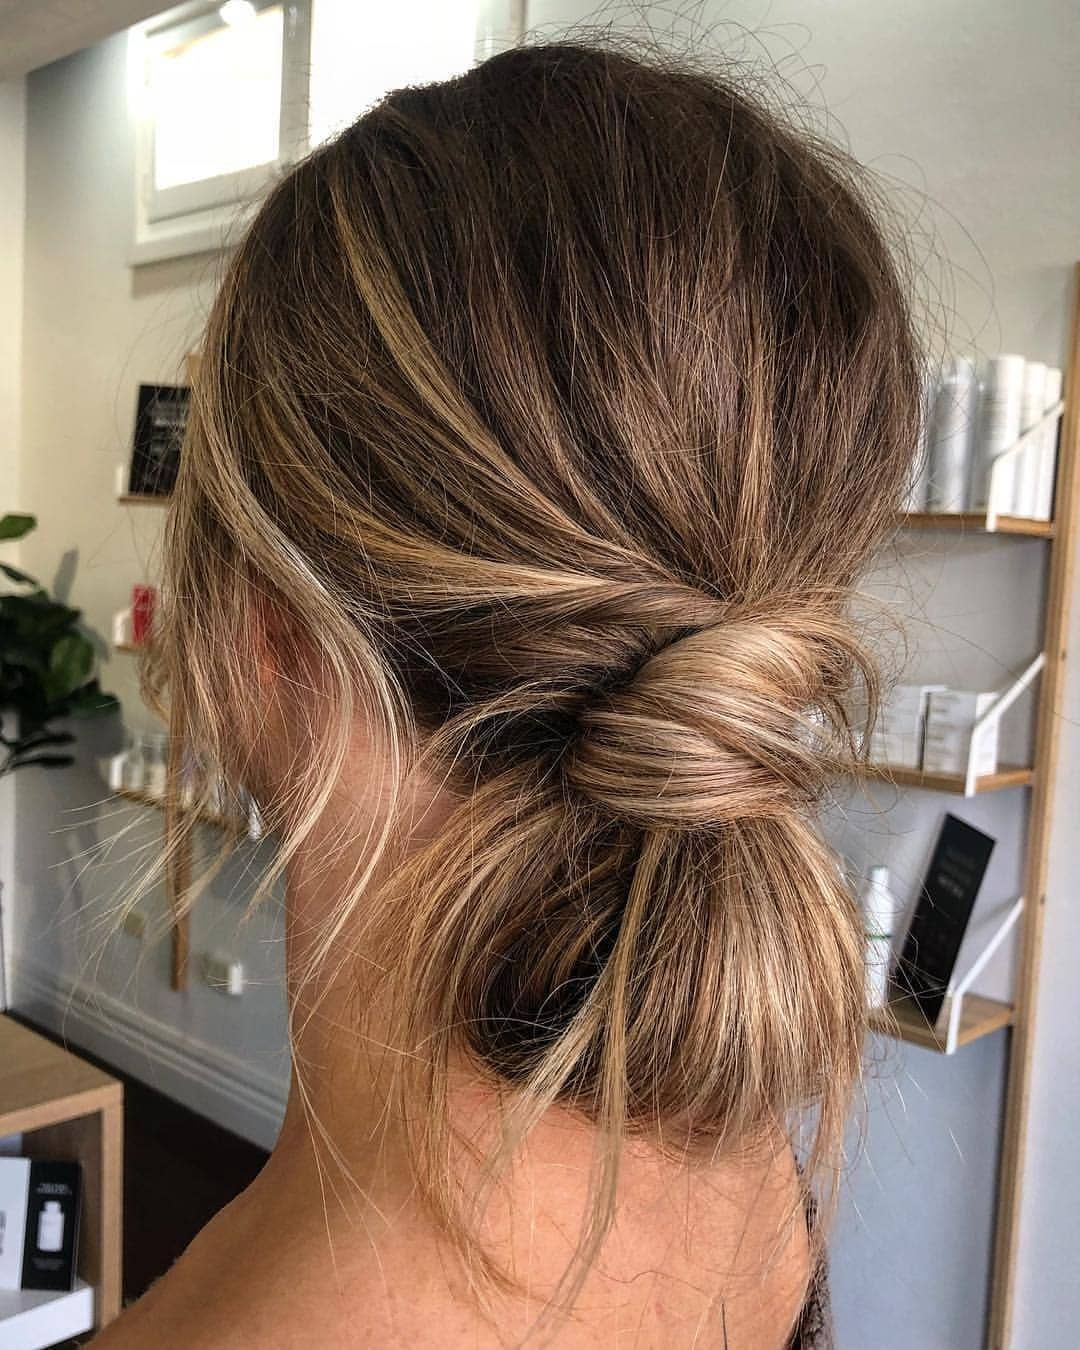 17 Fetching Hairstyles Updo Casual Highlights To Sport This Season Bridemaids Hairstyles Braided Hairstyles Updo Casual Hair Updos